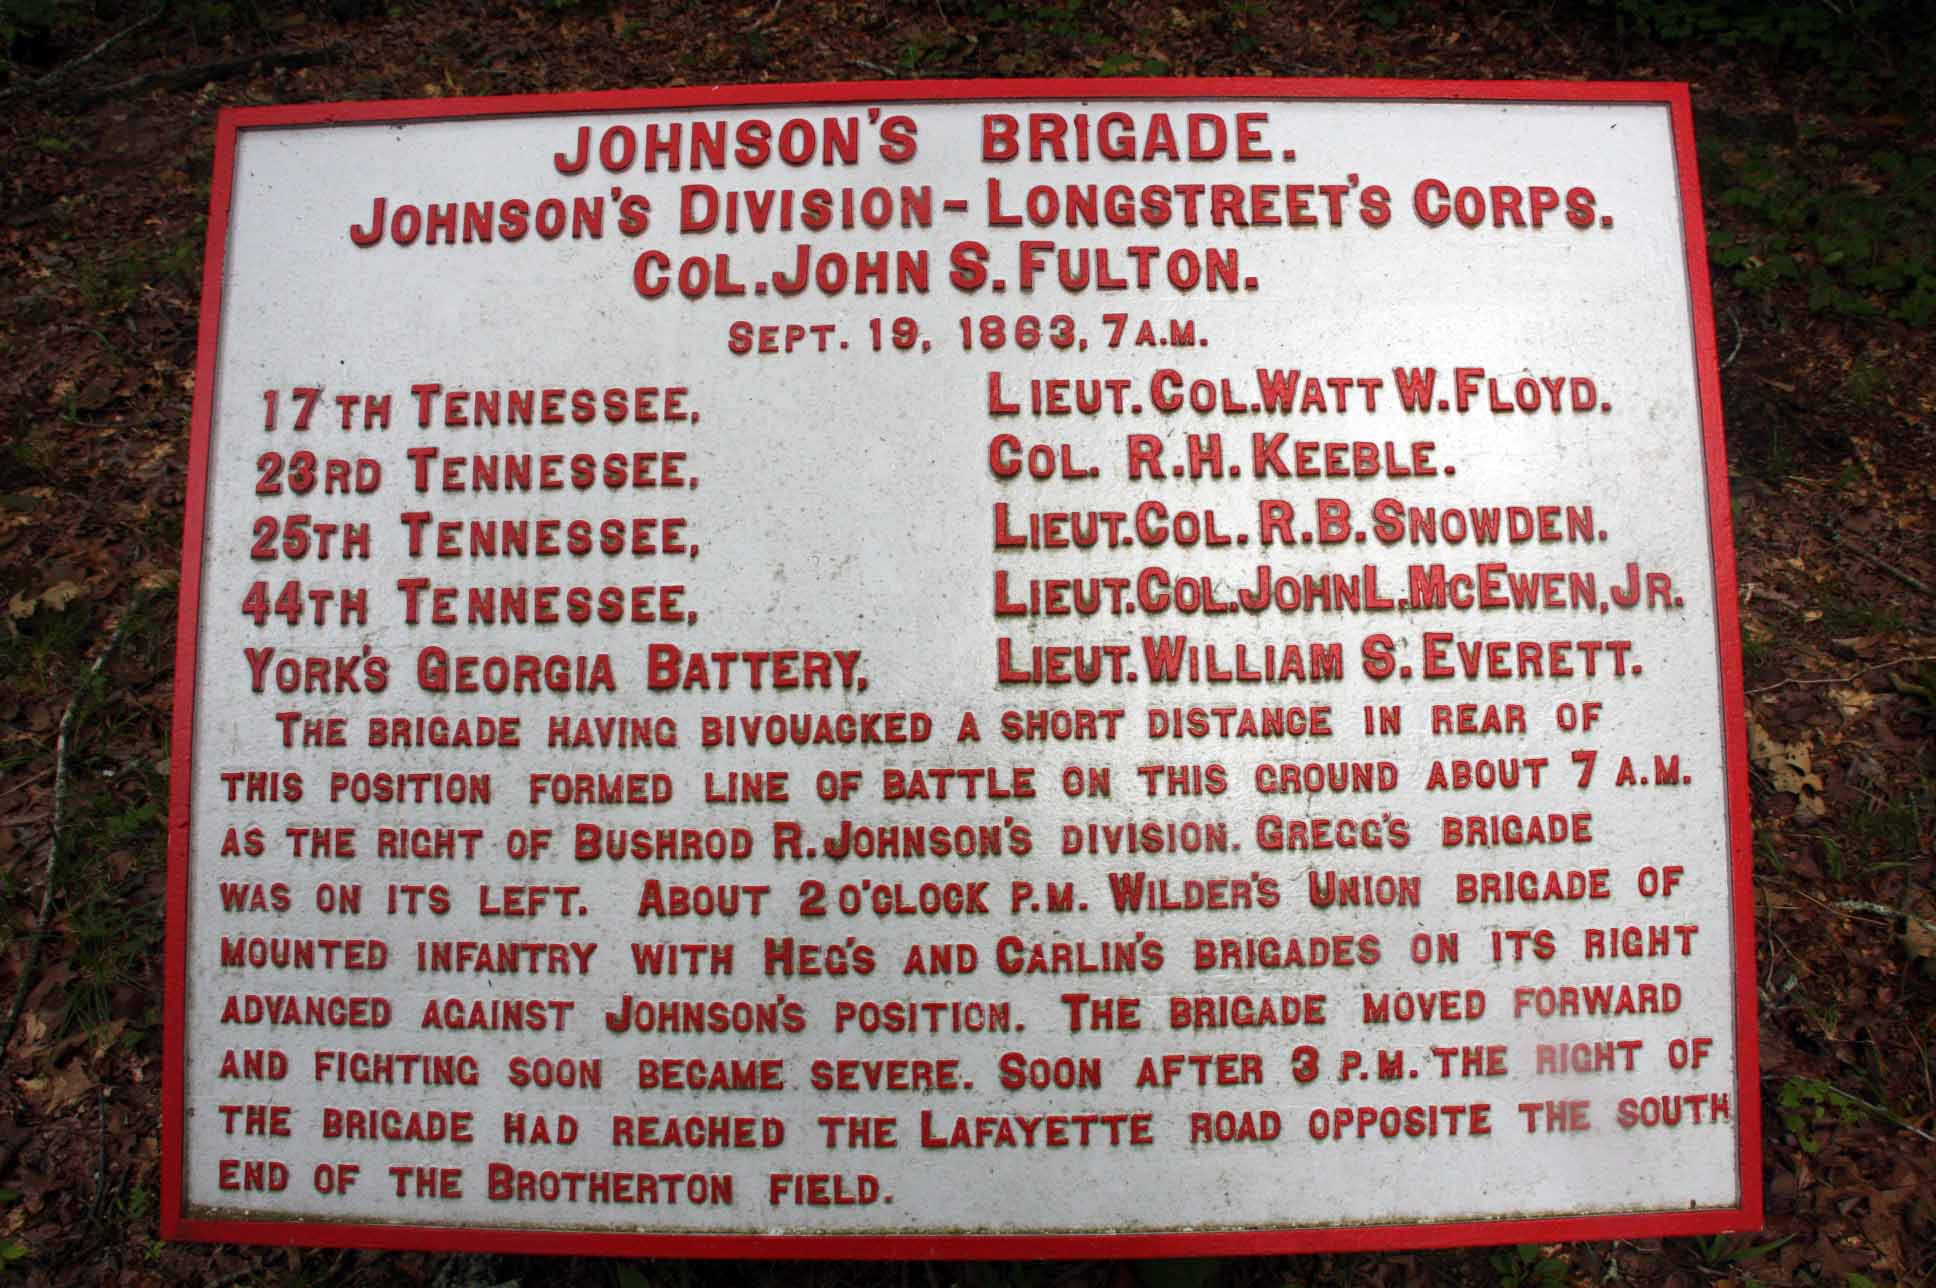 Johnson's Brigade Tablet, click photo to enlarge.